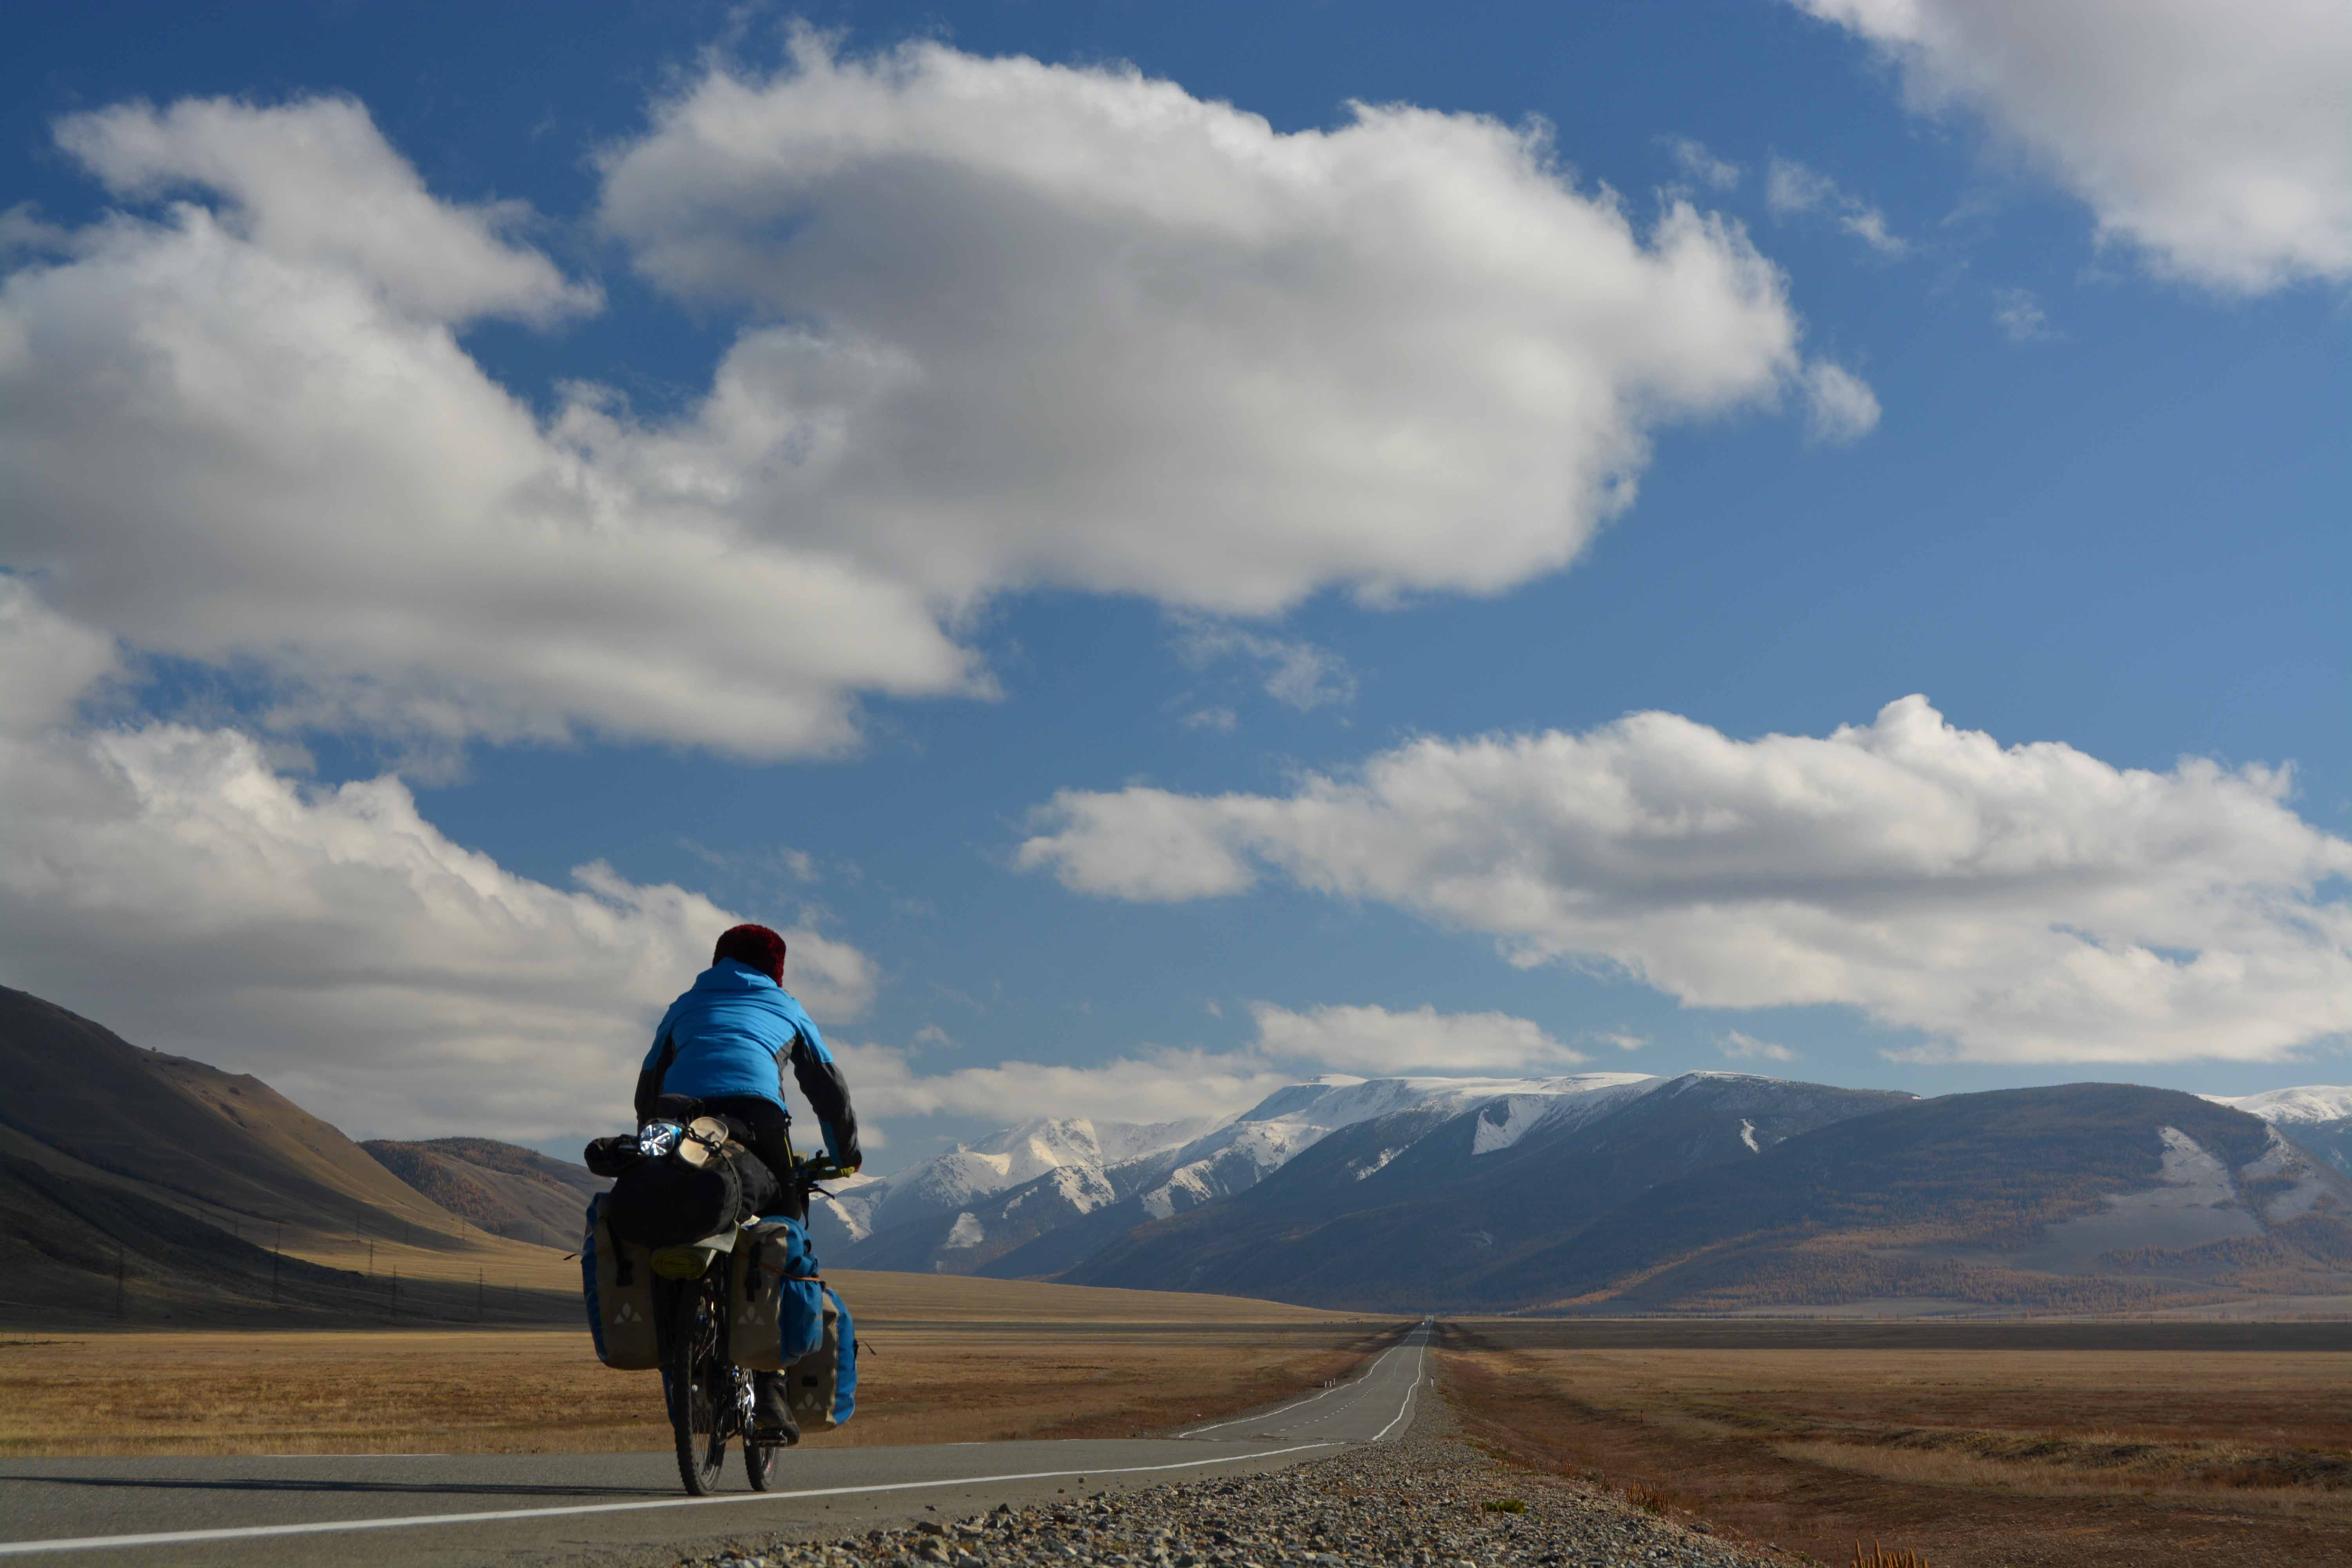 It is the end of September and I have made it to a city named Ayagoz  somewhere between Almaty and Semipalatinsk in eastern Kazakhstan.